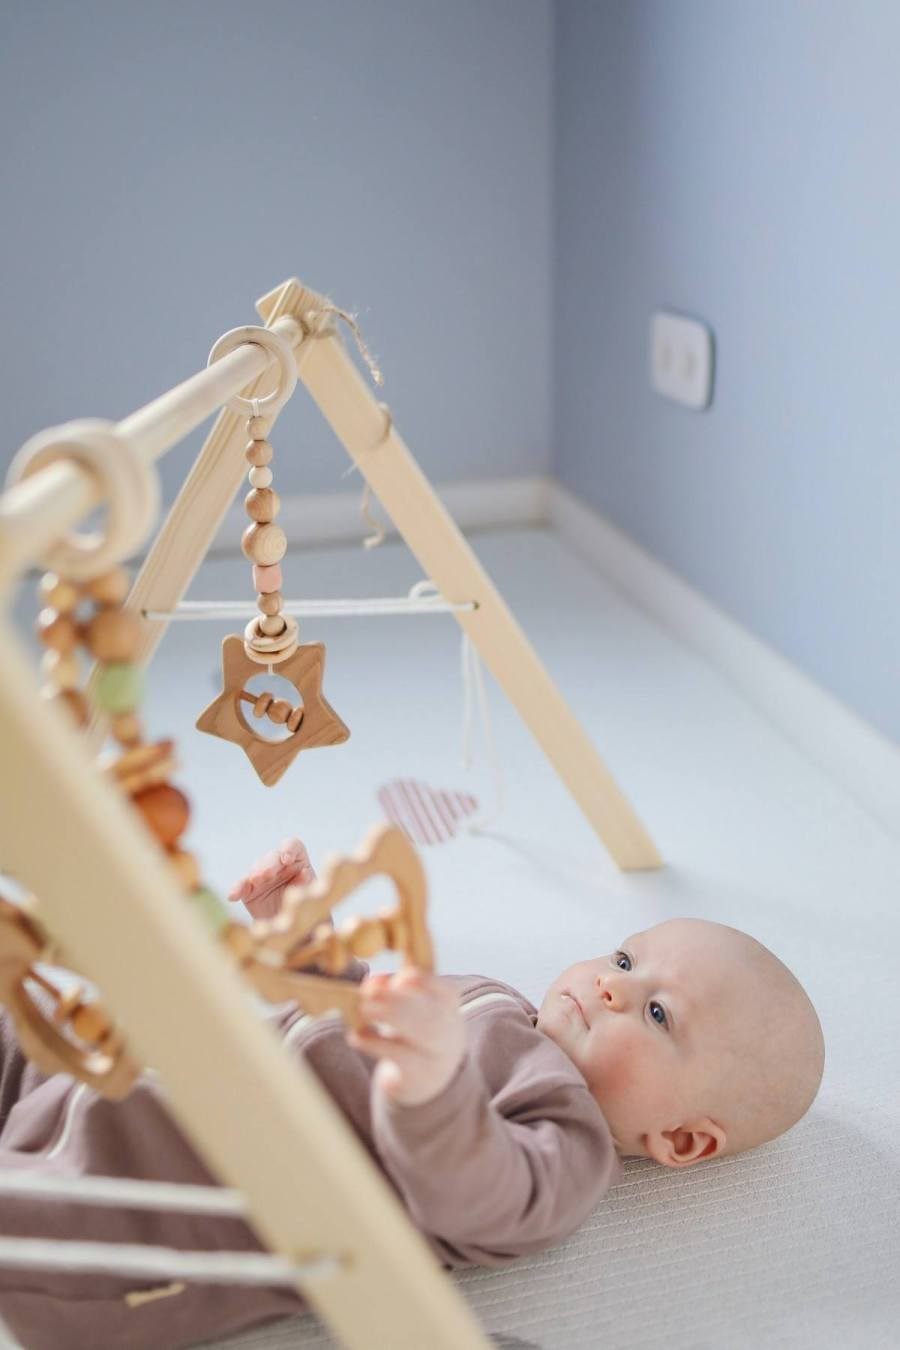 Have you ever wondered why you should buy rattles for babies? Here are some reasons to help buy the best rattles for babies. Learn why these first baby toys are so important to a child's development.